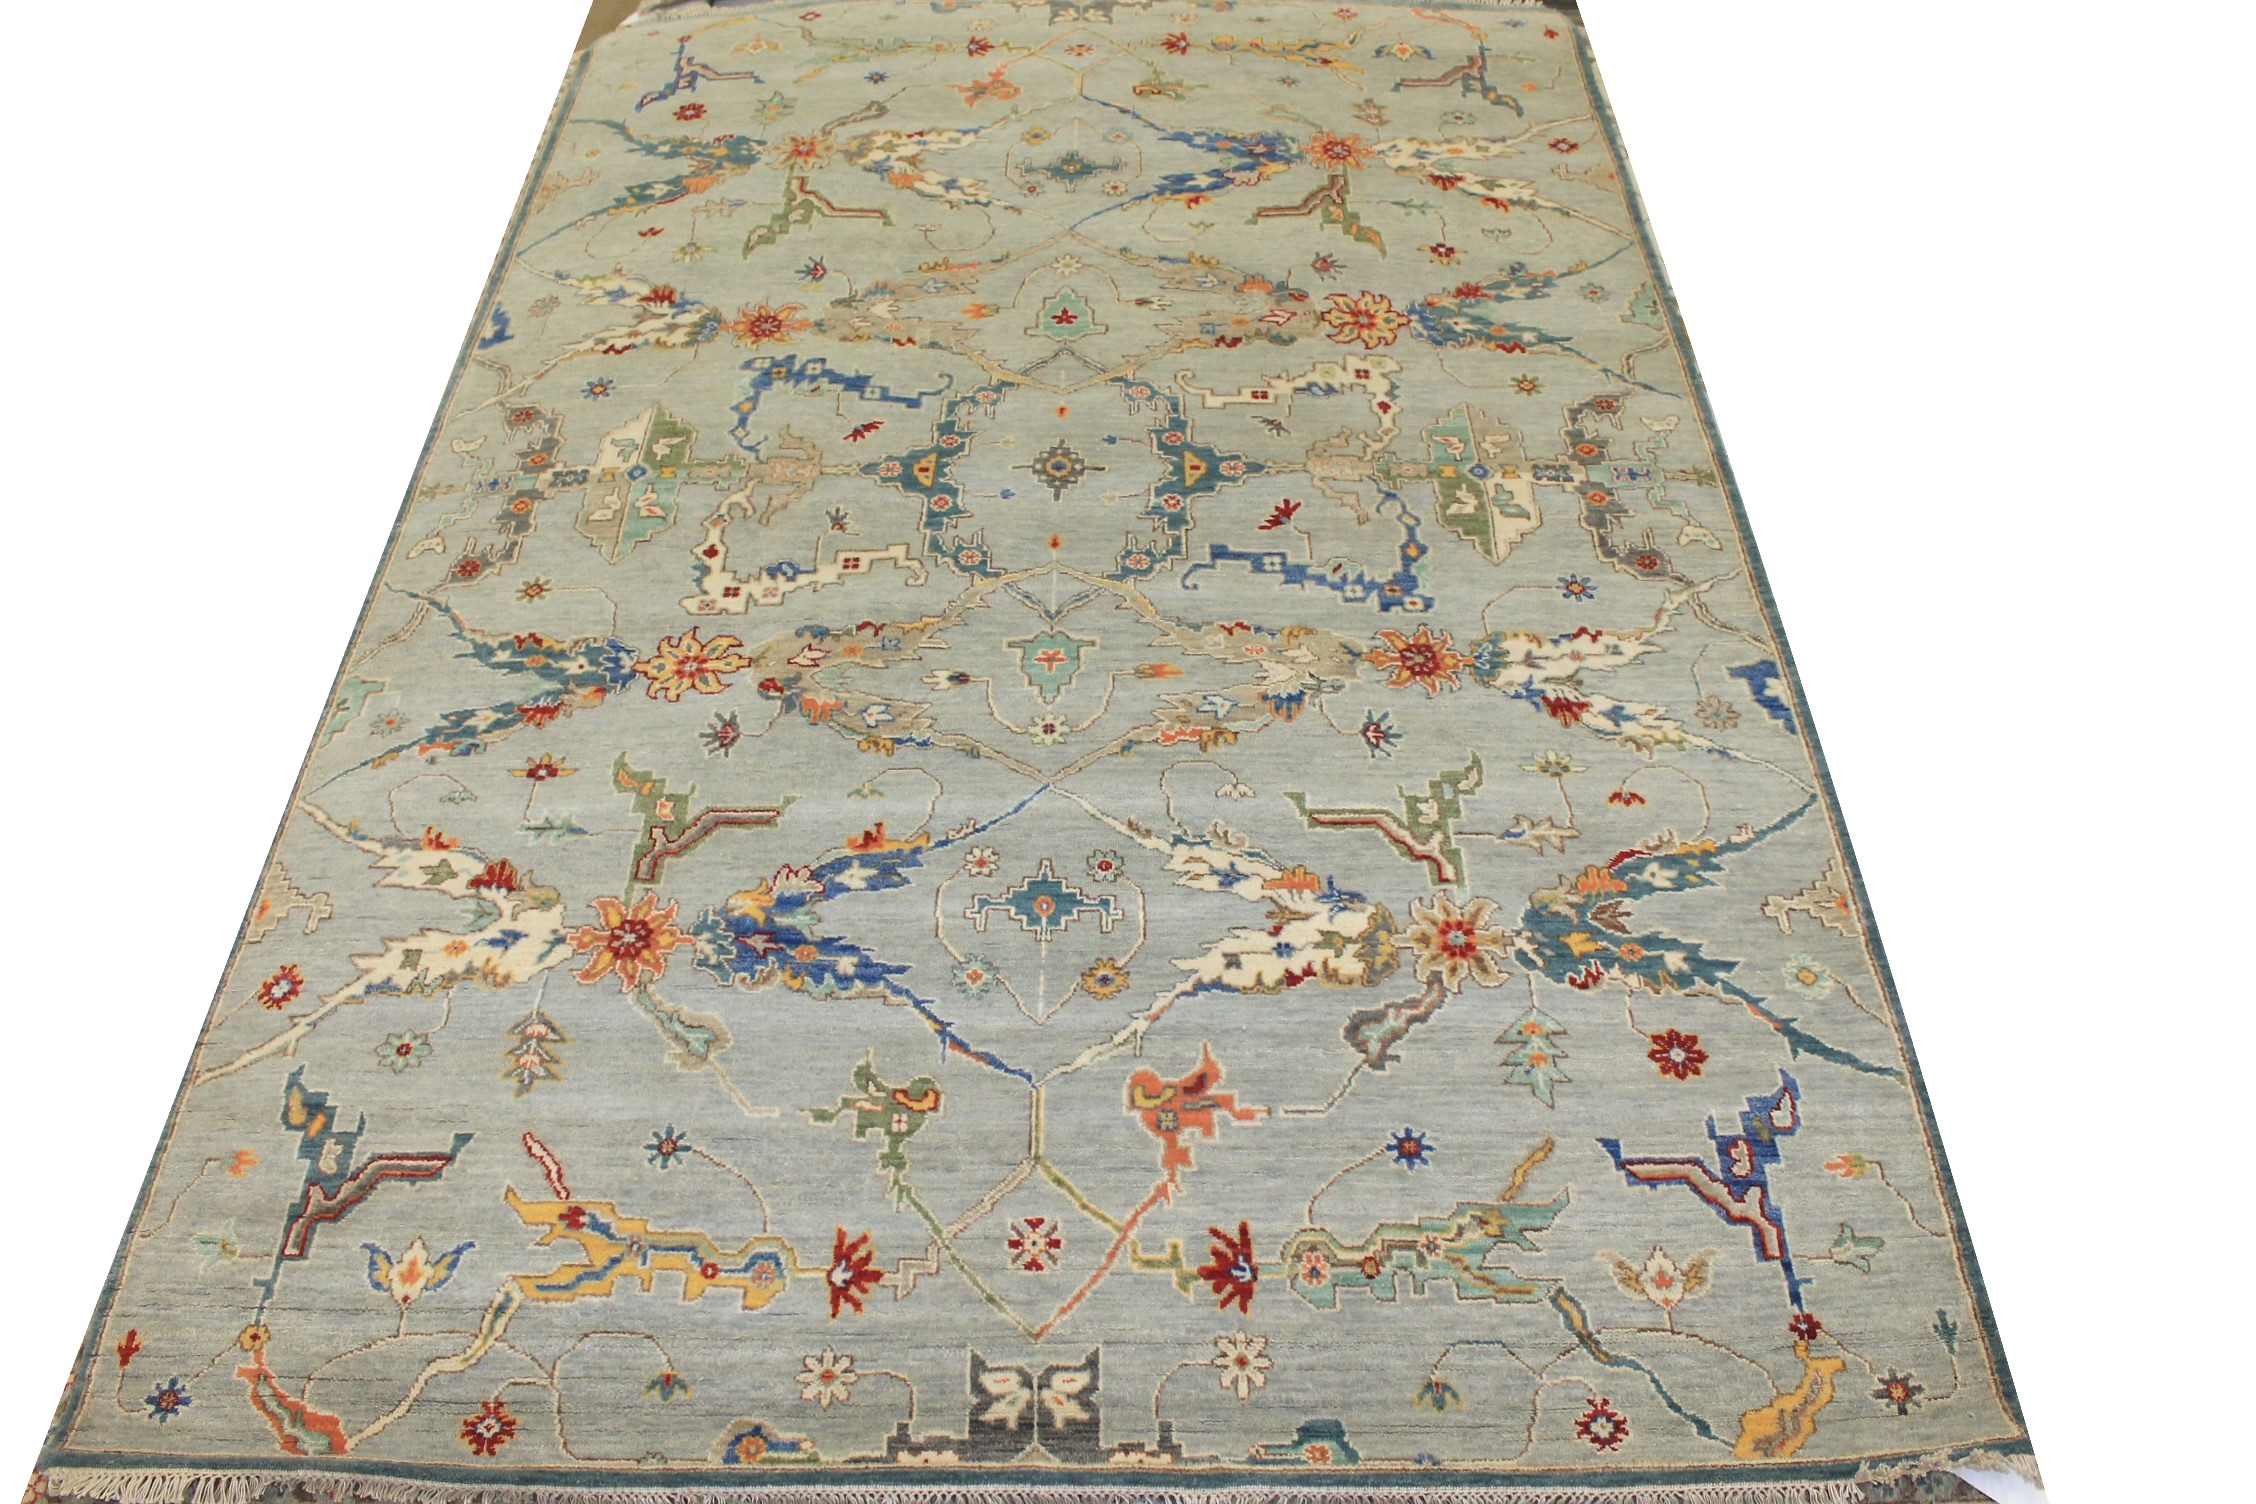 6x9 Oriental Hand Knotted Wool Area Rug - MR025486